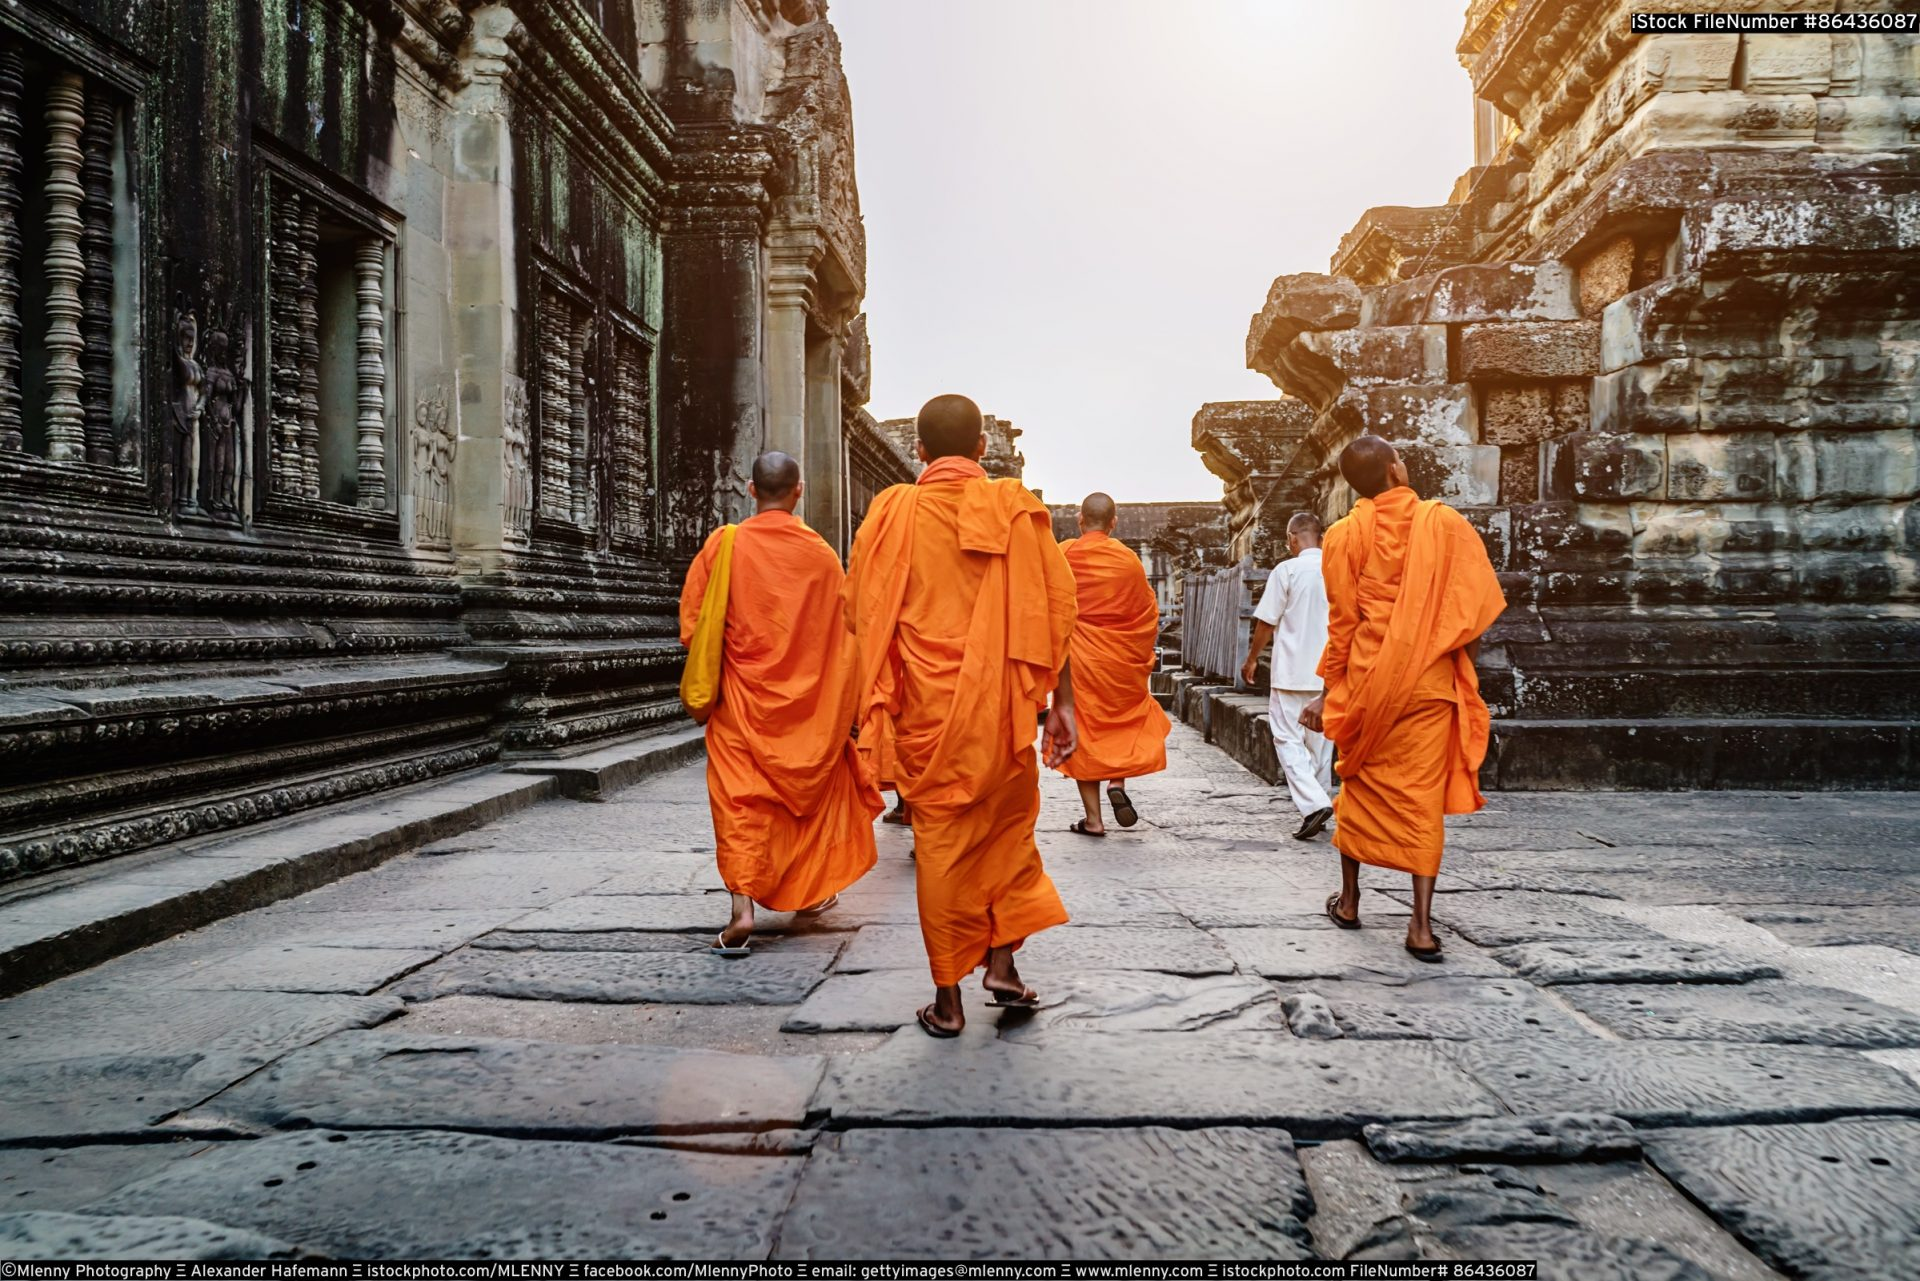 Monks in Angkor Wat Cambodia